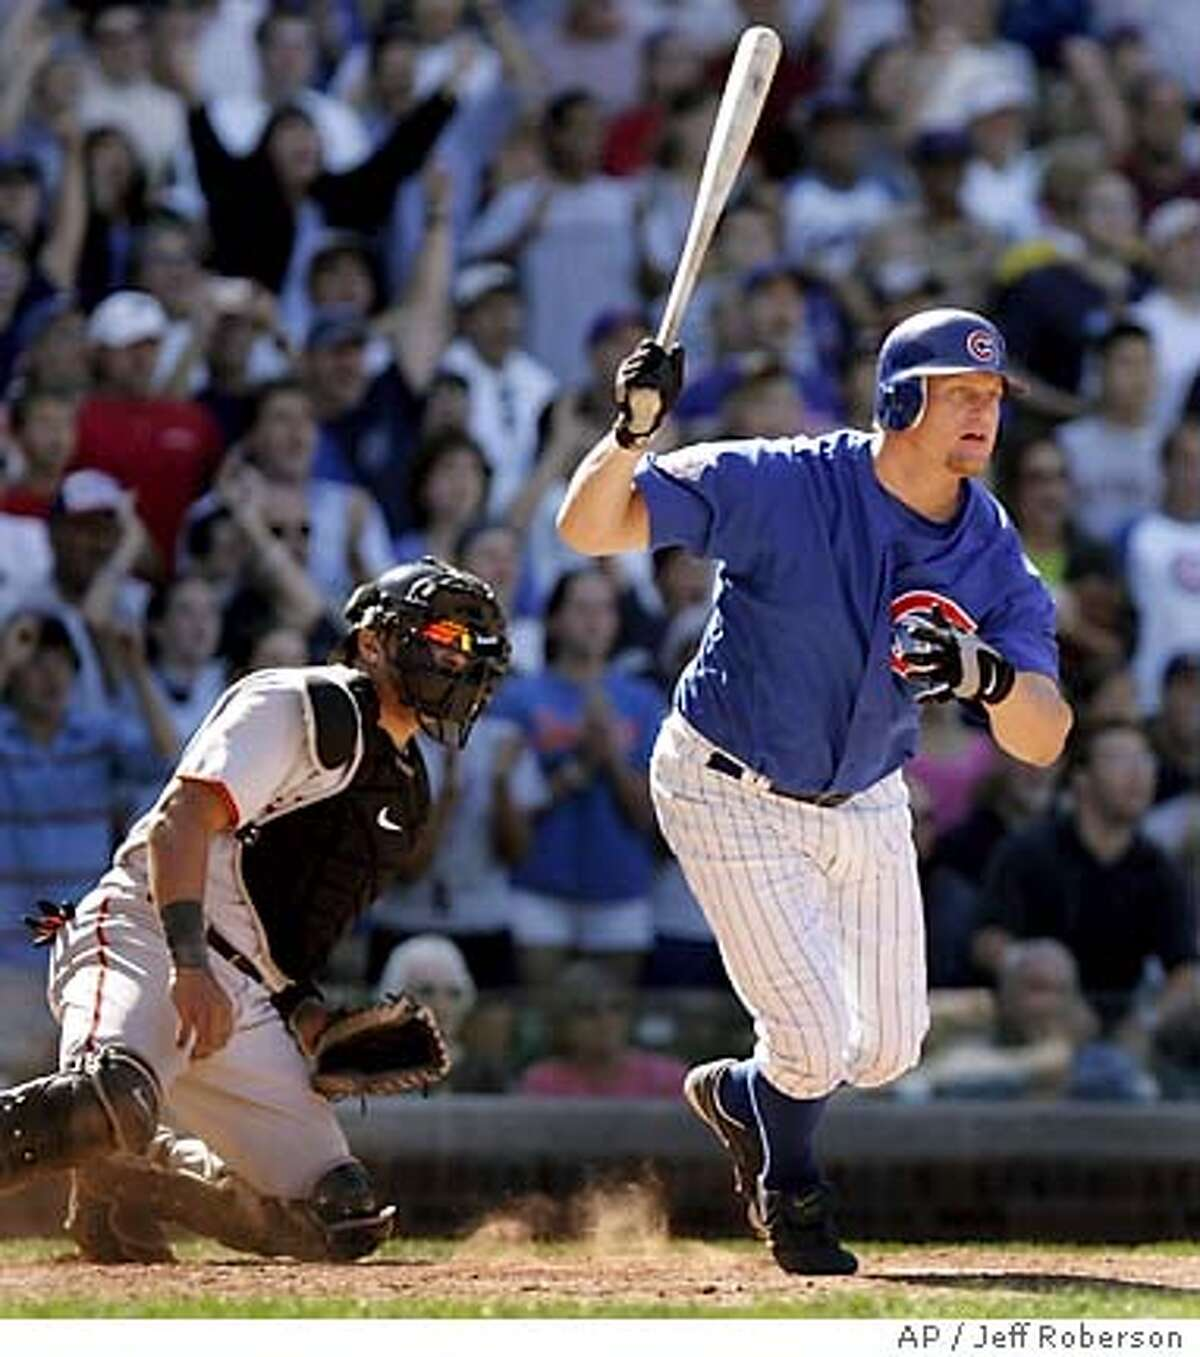 Chicago Cubs' Jeromy Burnitz, right, watches along with San Francisco Giants catcher Yorvit Torrealba, left, as his game-winning RBI single lands in the outfield during the bottom of the ninth Wednesday, July 27, 2005 in Chicago. The single scored the Cubs' Jody Gerut from second giving the Cubs a 4-3 victory. (AP Photo/Jeff Roberson)